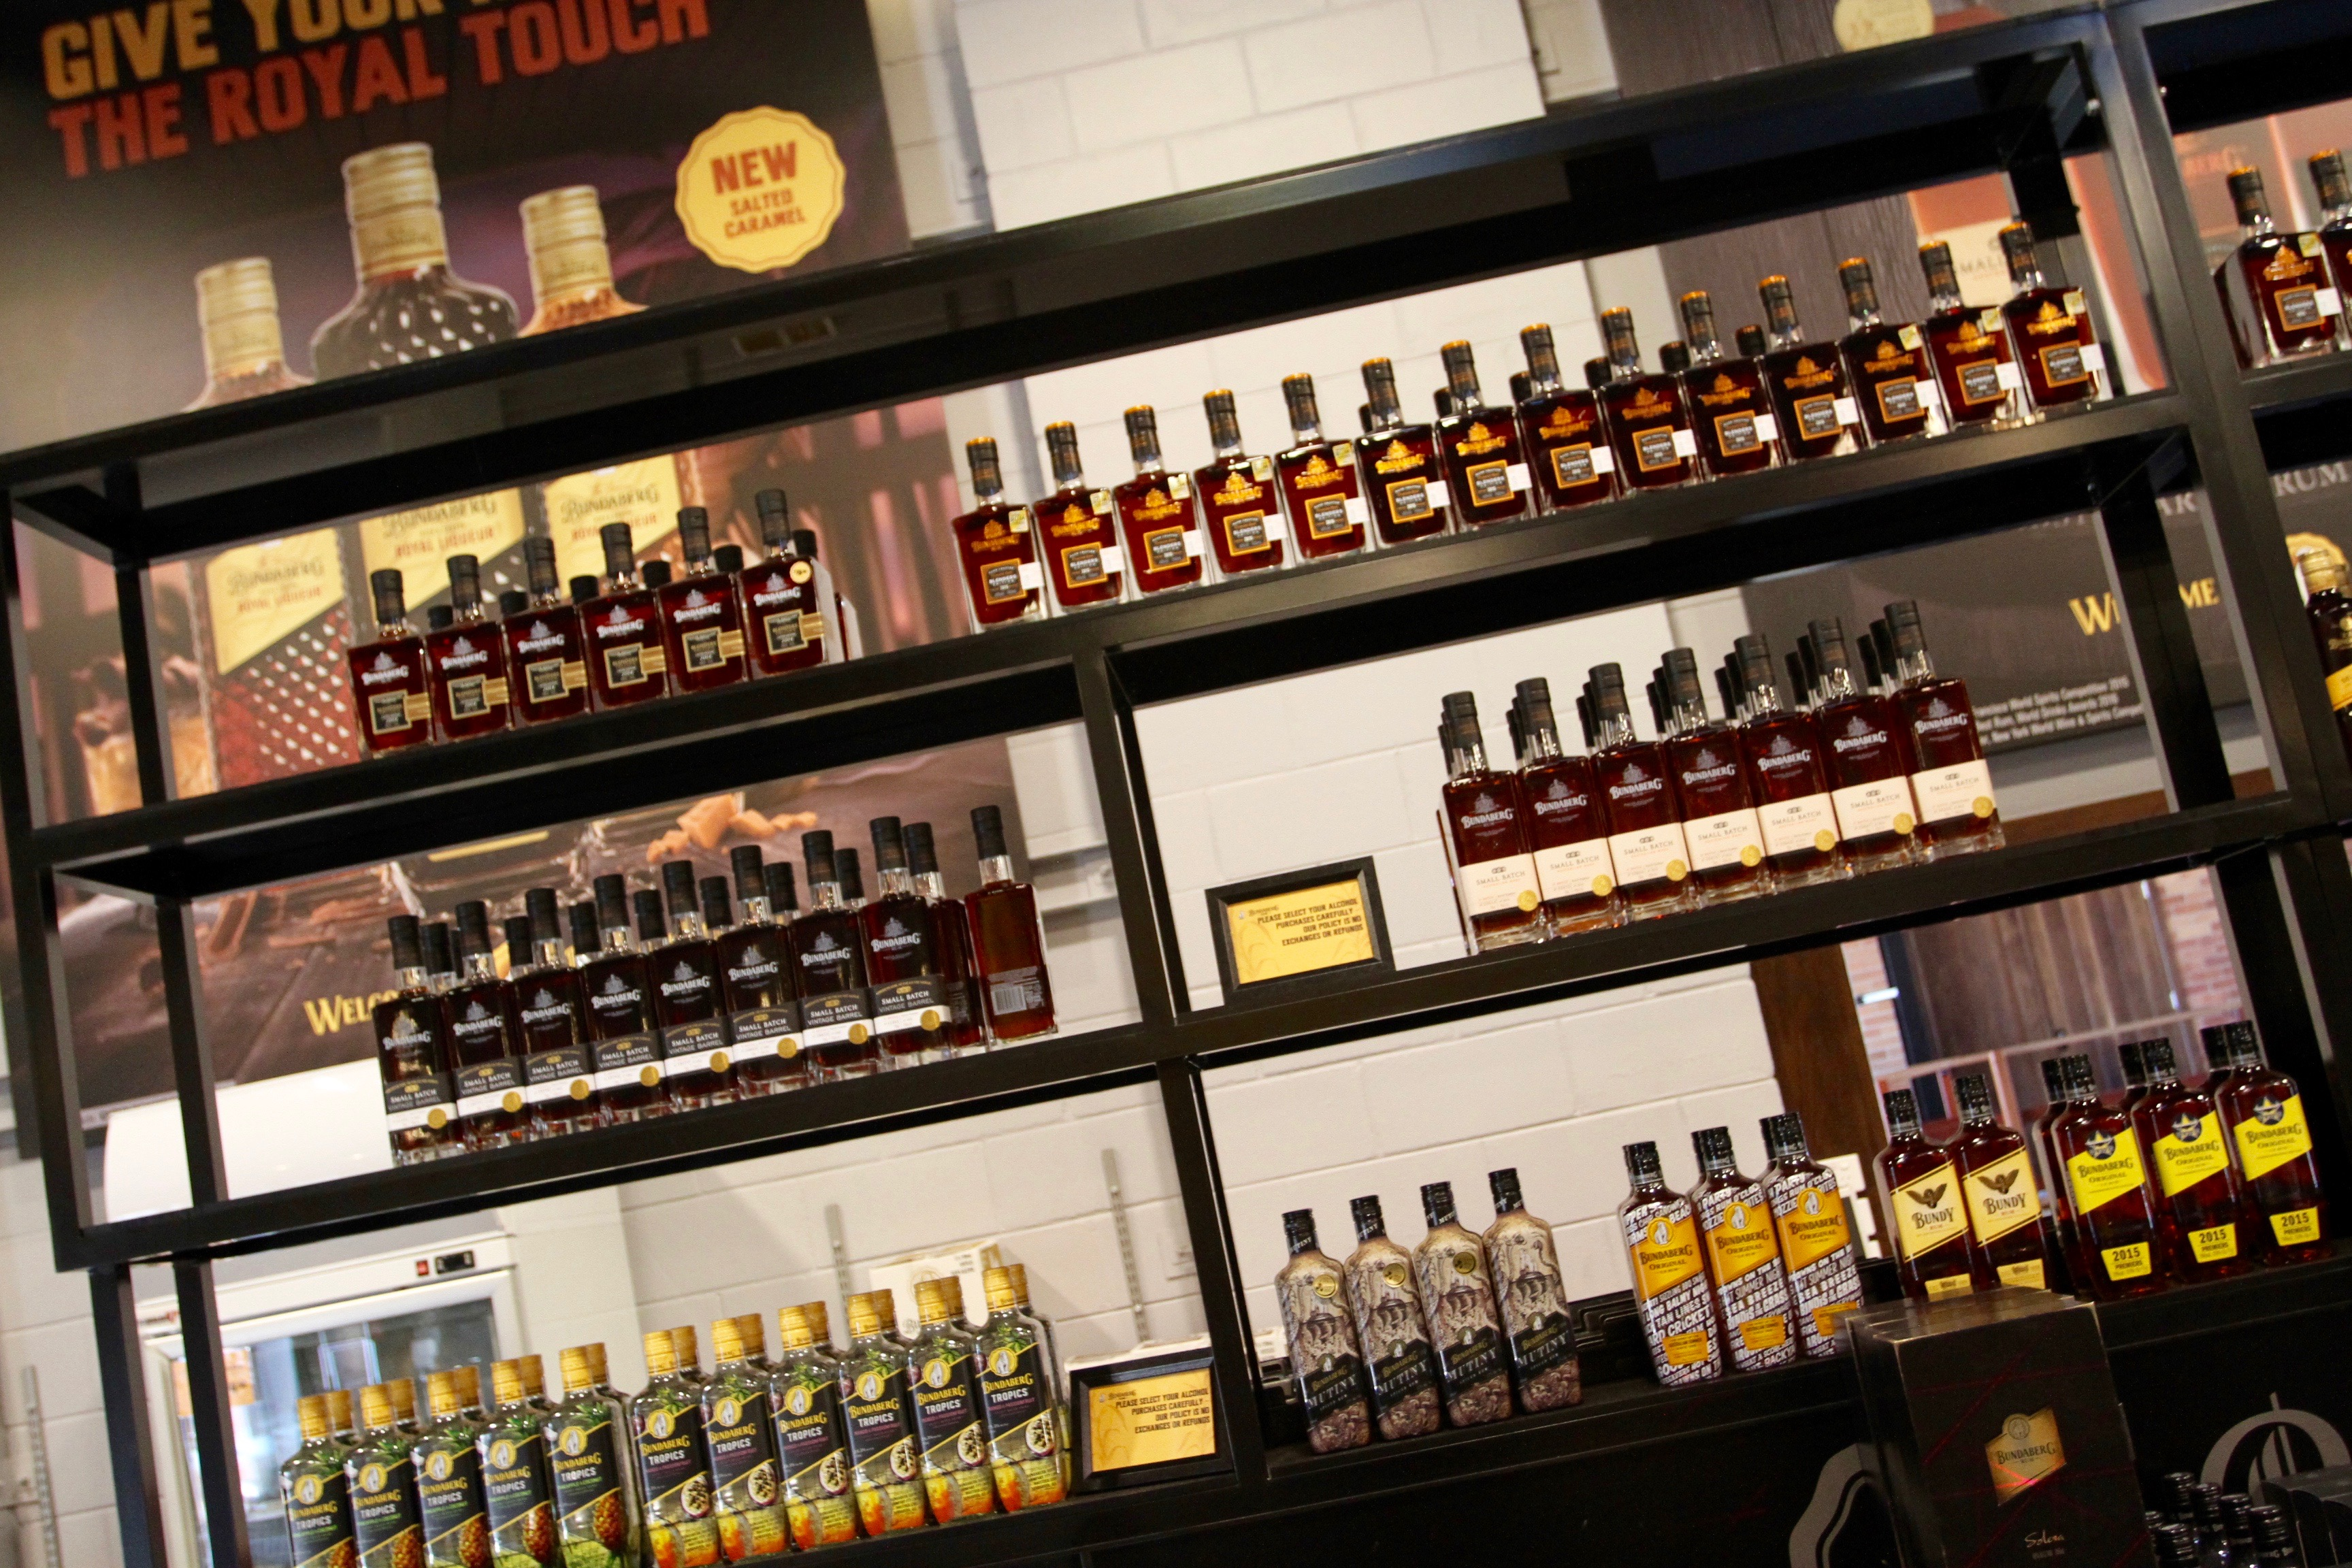 Bundaberg Rum Tour Review